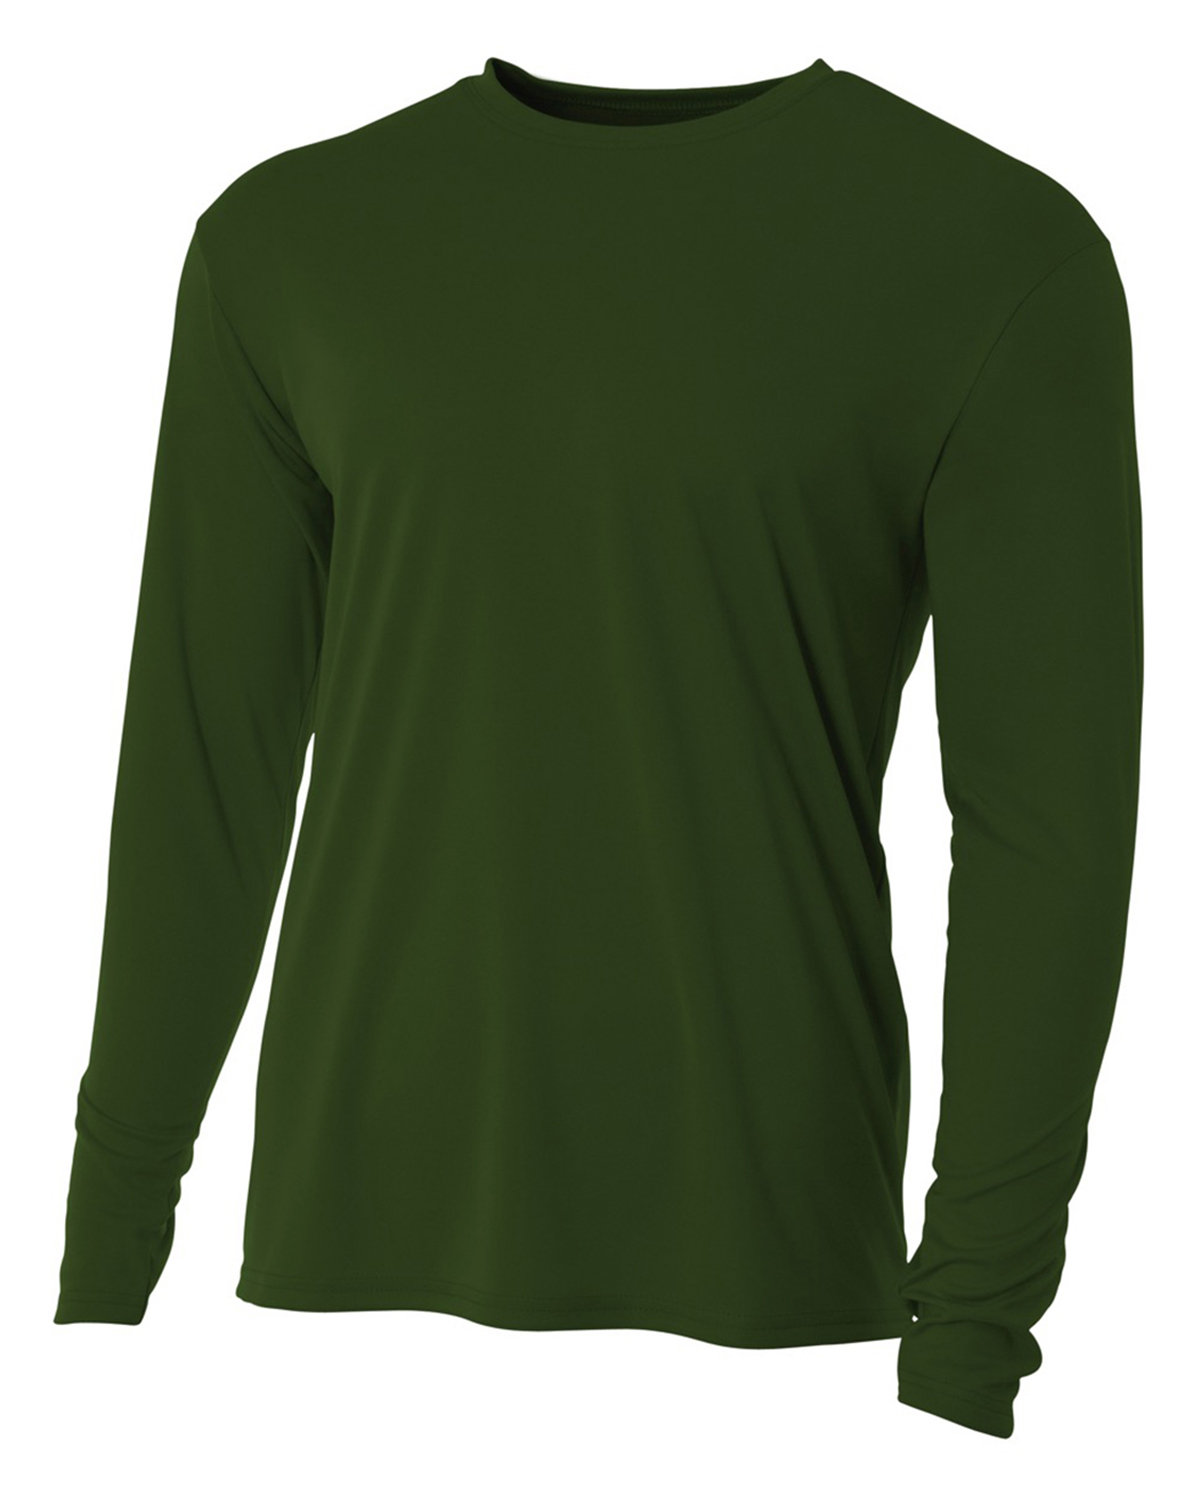 A4 Youth Long Sleeve Cooling Performance Crew Shirt MILITARY GREEN